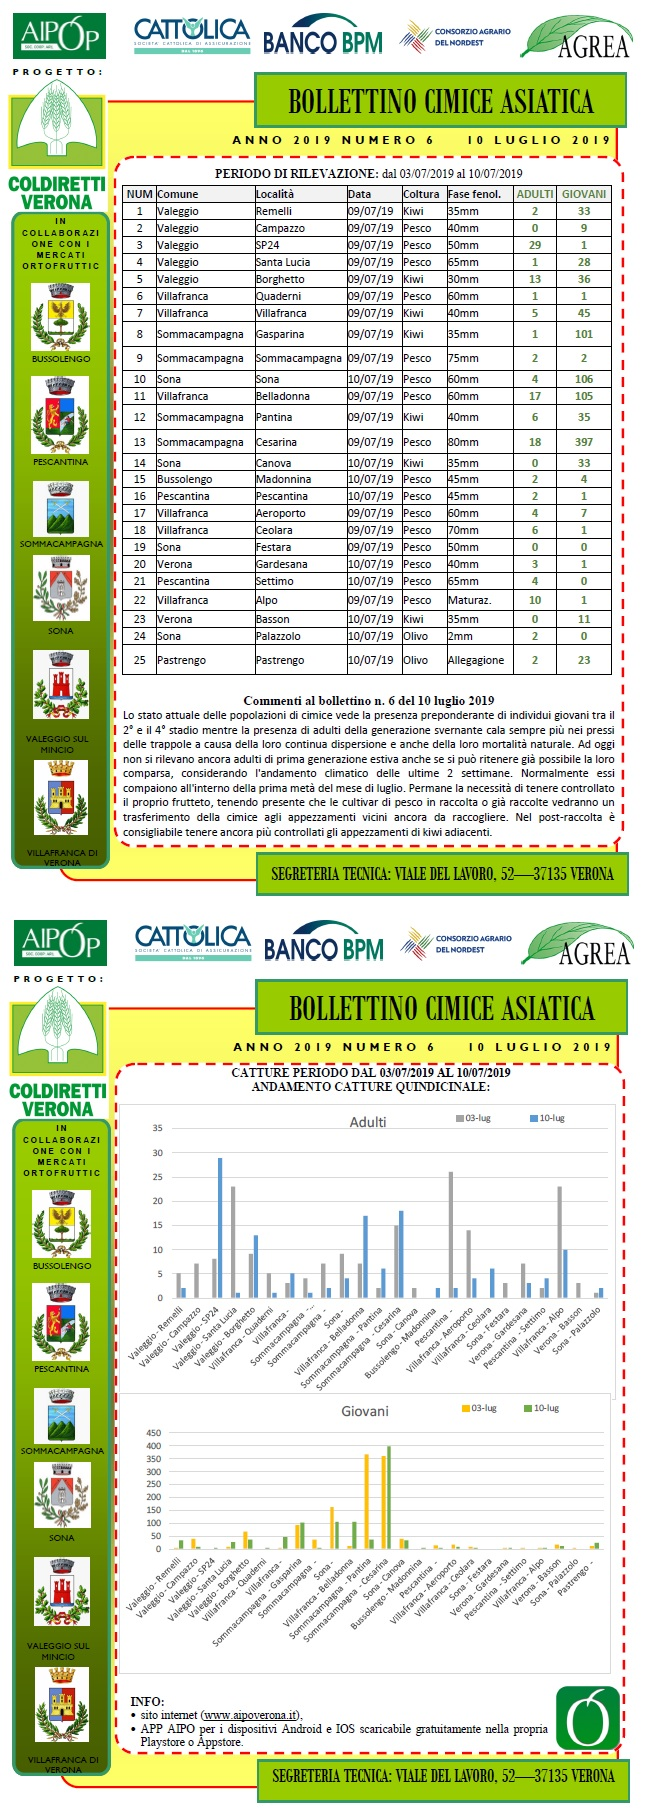 BOLLETTINO CIMICE ASIATICA N. 6 DEL 10/07/2019